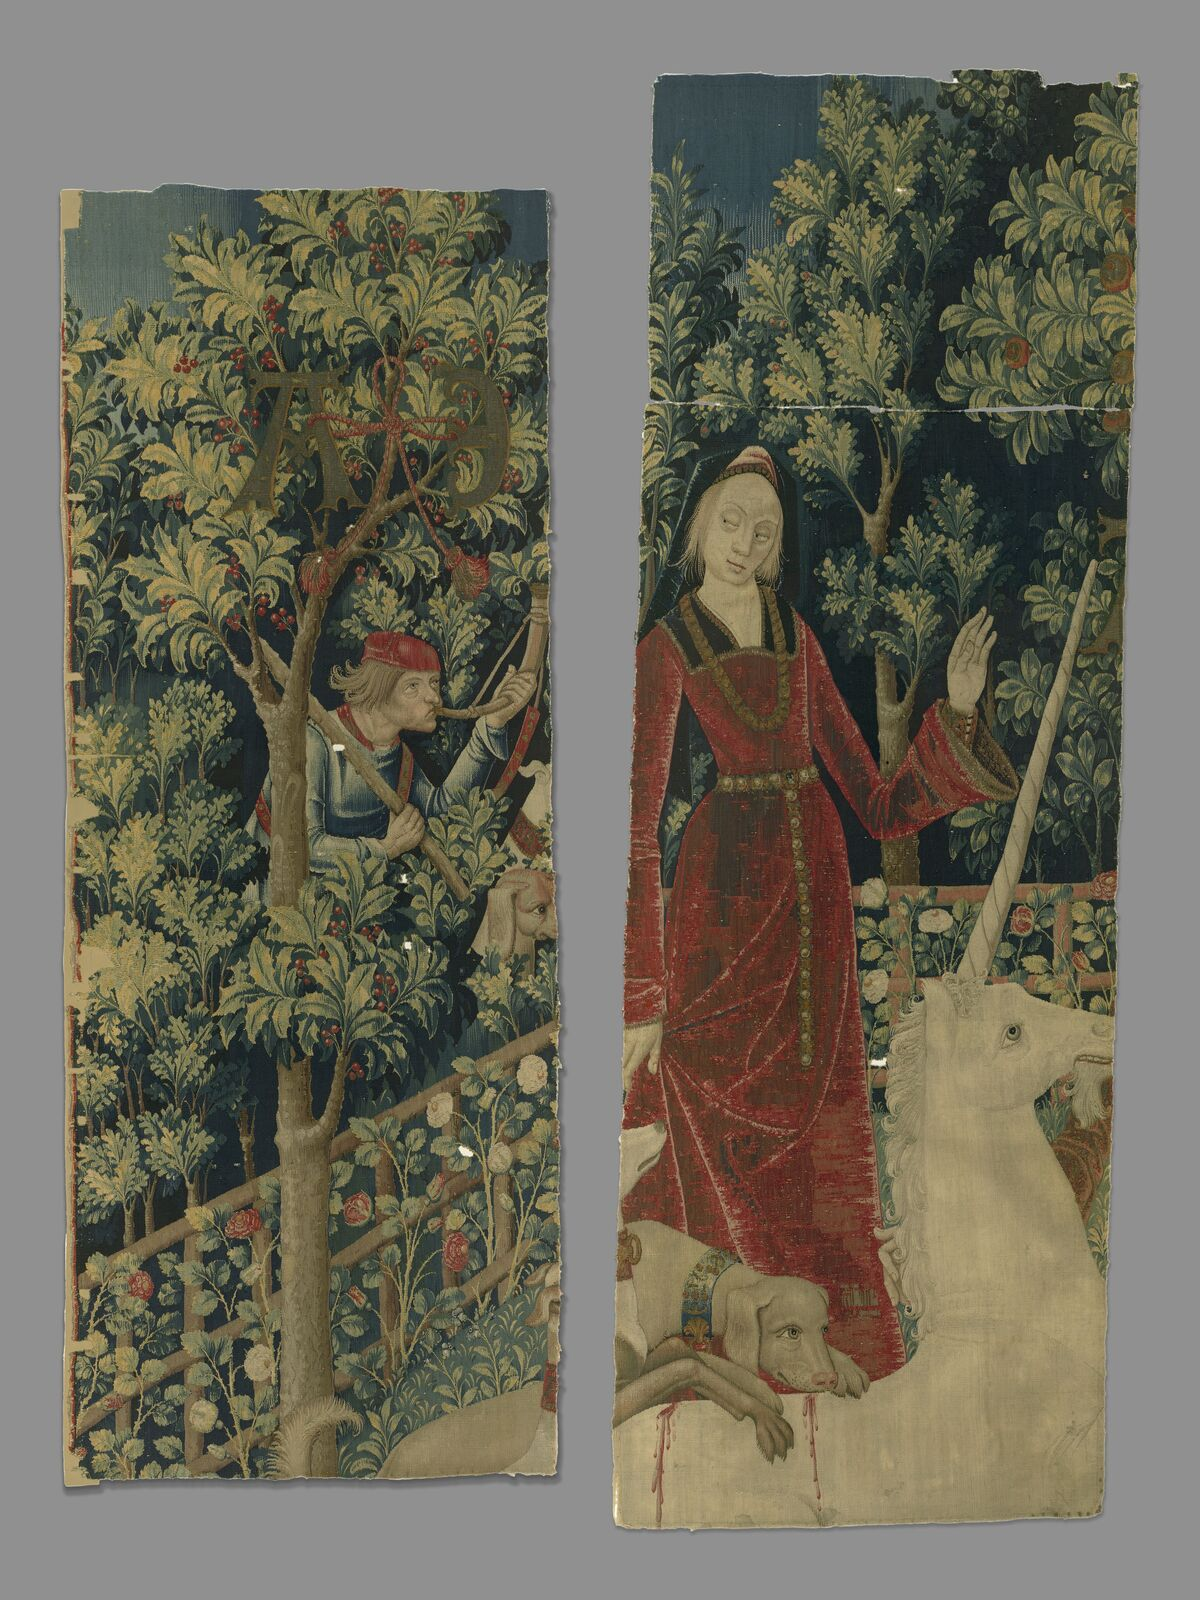 The Mystic Capture of the Unicorn (from the Unicorn Tapestries) Fragment A and Fragment B, 1495 – 1505. Gift of John D. Rockefeller Jr., 1937. Image courtesy of the Metropolitan Museum of Art.